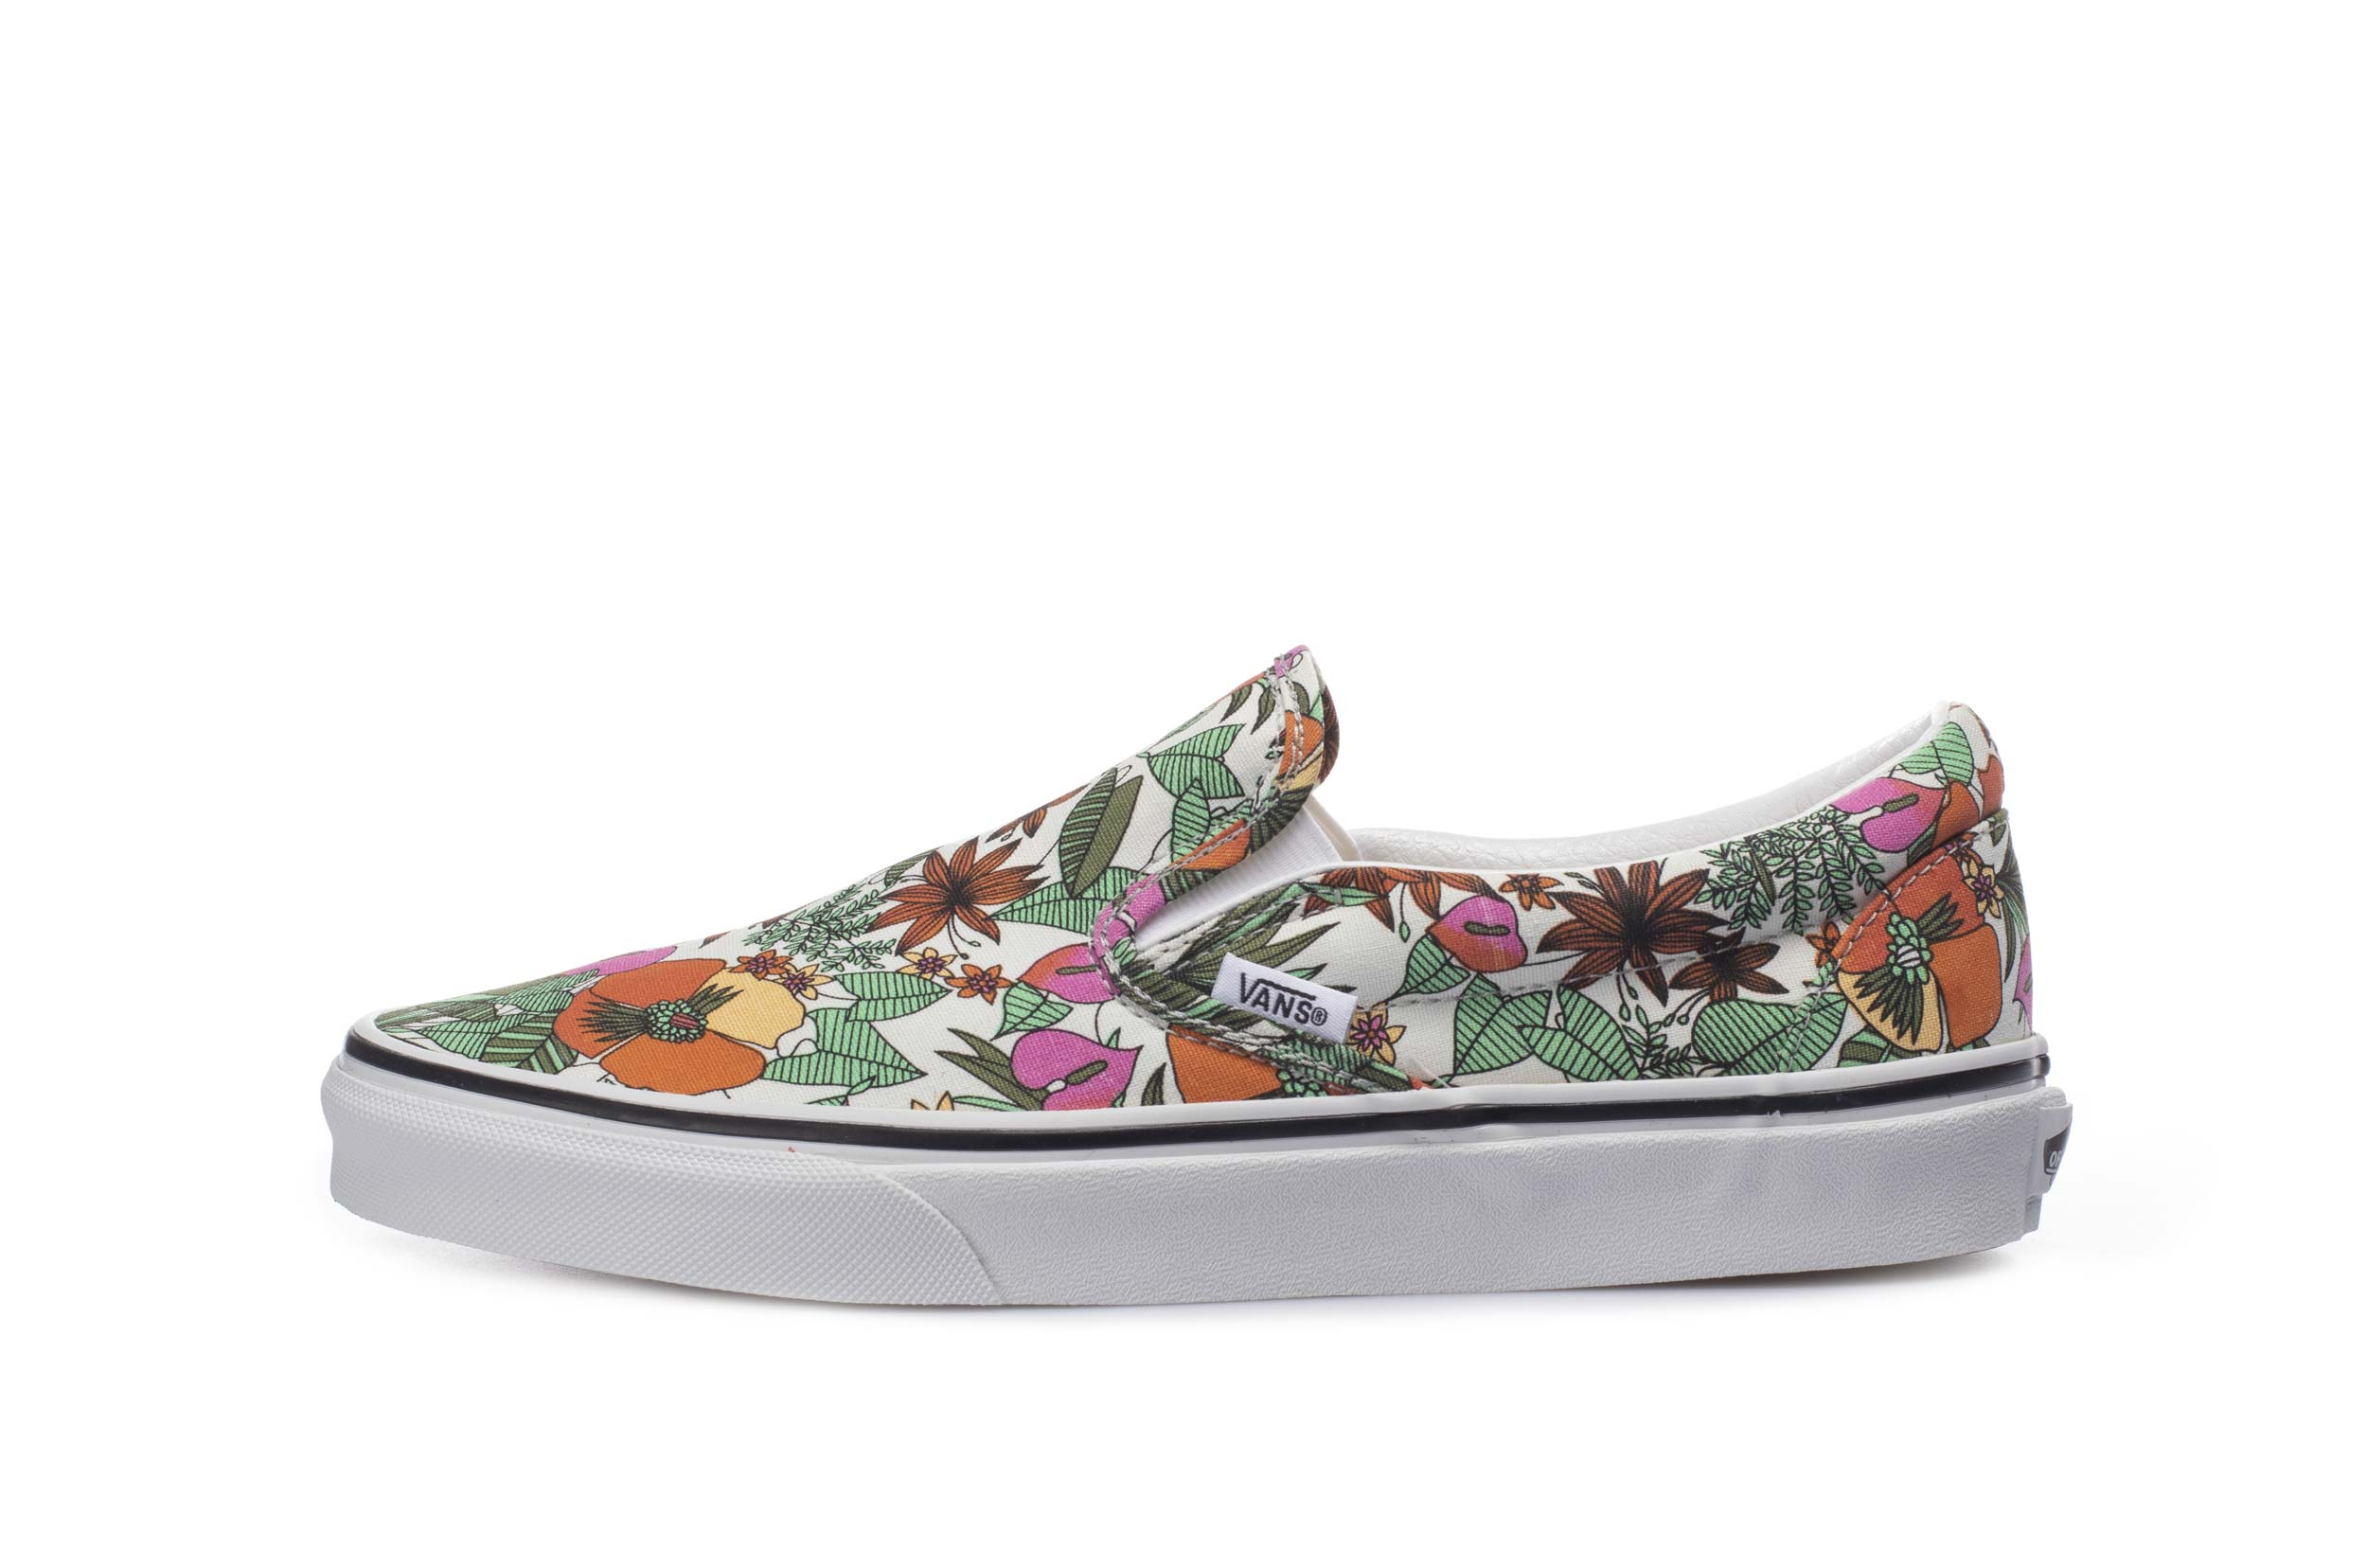 VANS MULTI TROPIC CLASSIC SLIP-ON VA4U38WS9-WS9 Πολύχρωμο